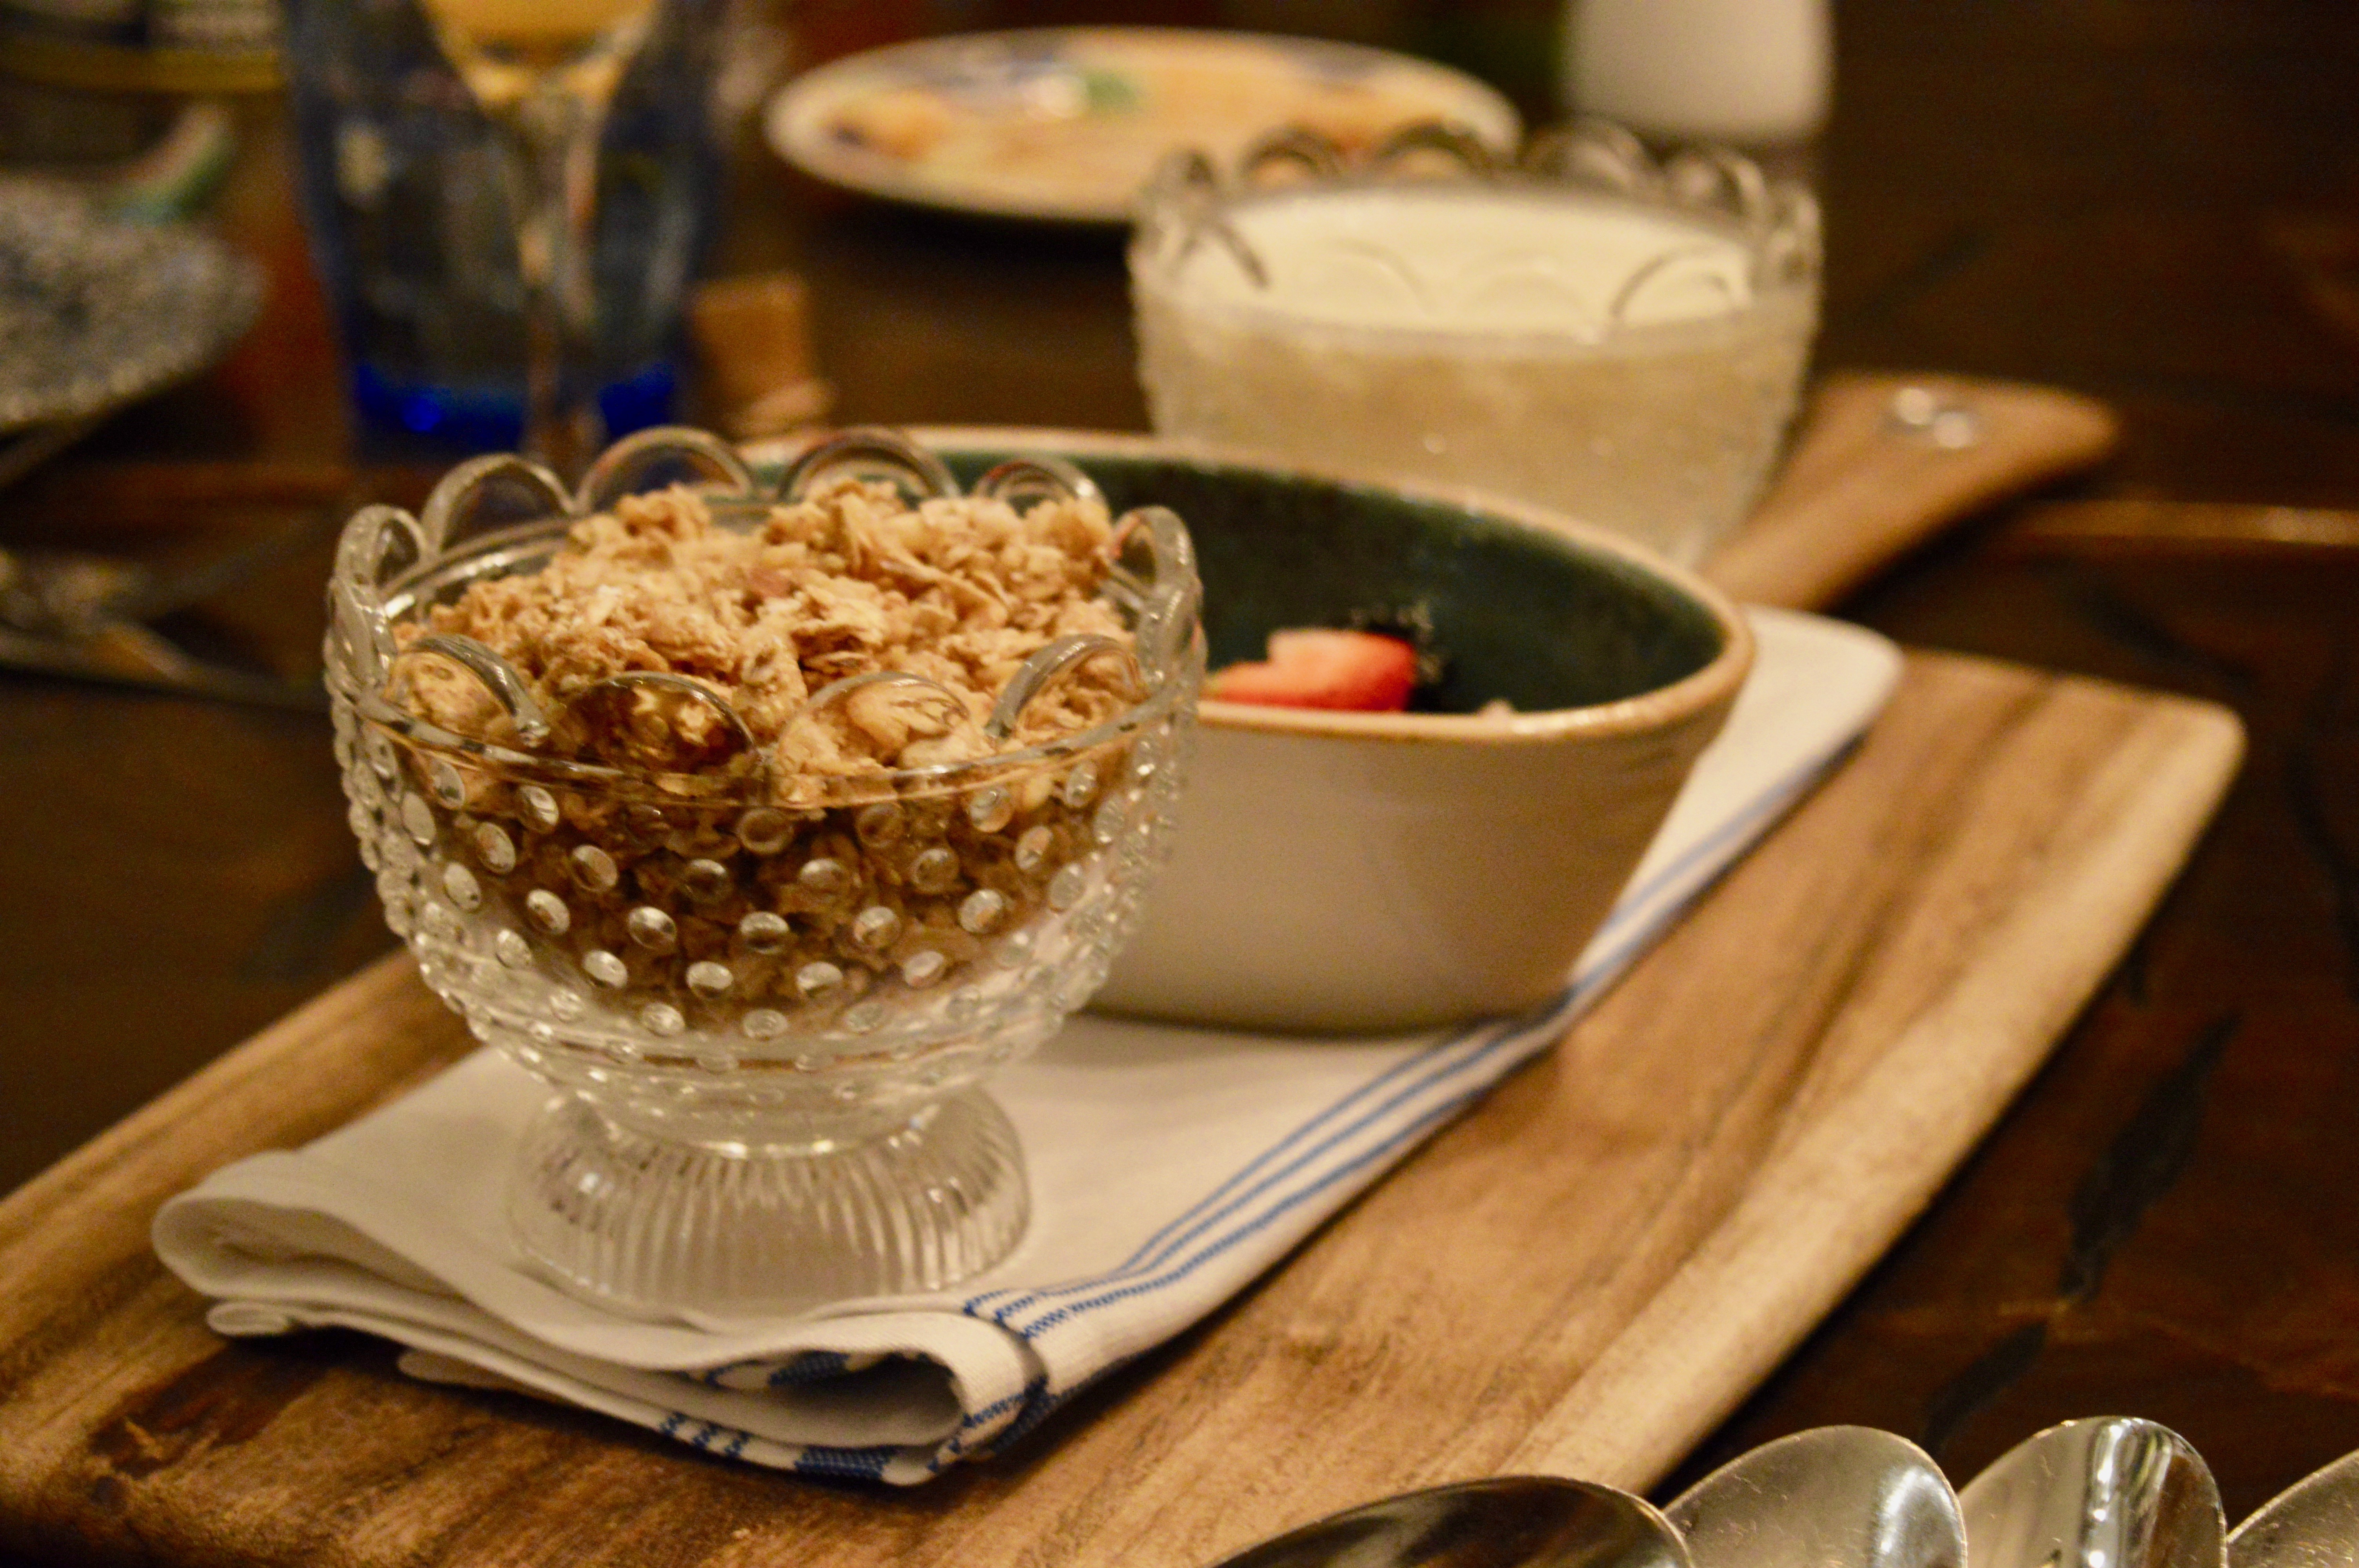 Granola Mercato Della Pescheria PostTurkey Day Thanksgiving Brunch | Italian dining served family style with the Las Vegas Influencers | The Venetian Las Vegas | Elle Blonde Luxury Lifestyle Destination Blog